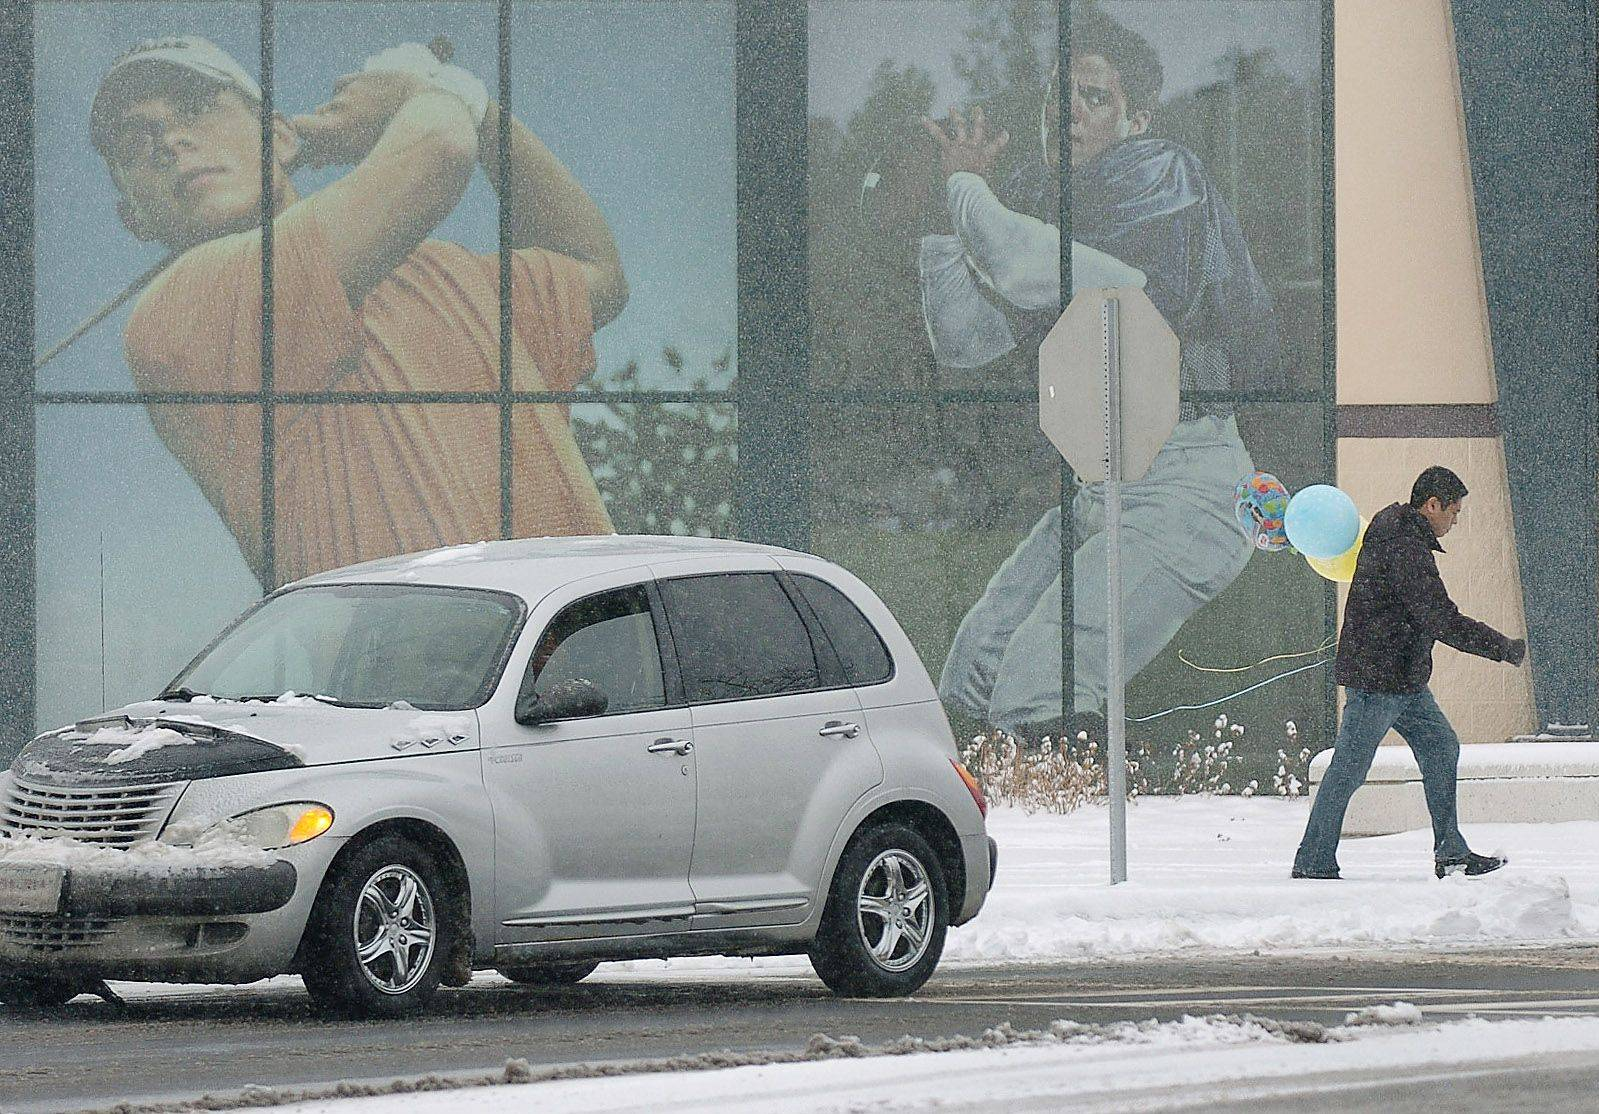 A man makes his way Saturday through the snow carrying balloons from Party City in front of Dick's Sporting Goods in Hawthorn Hills Square in Vernon Hills.